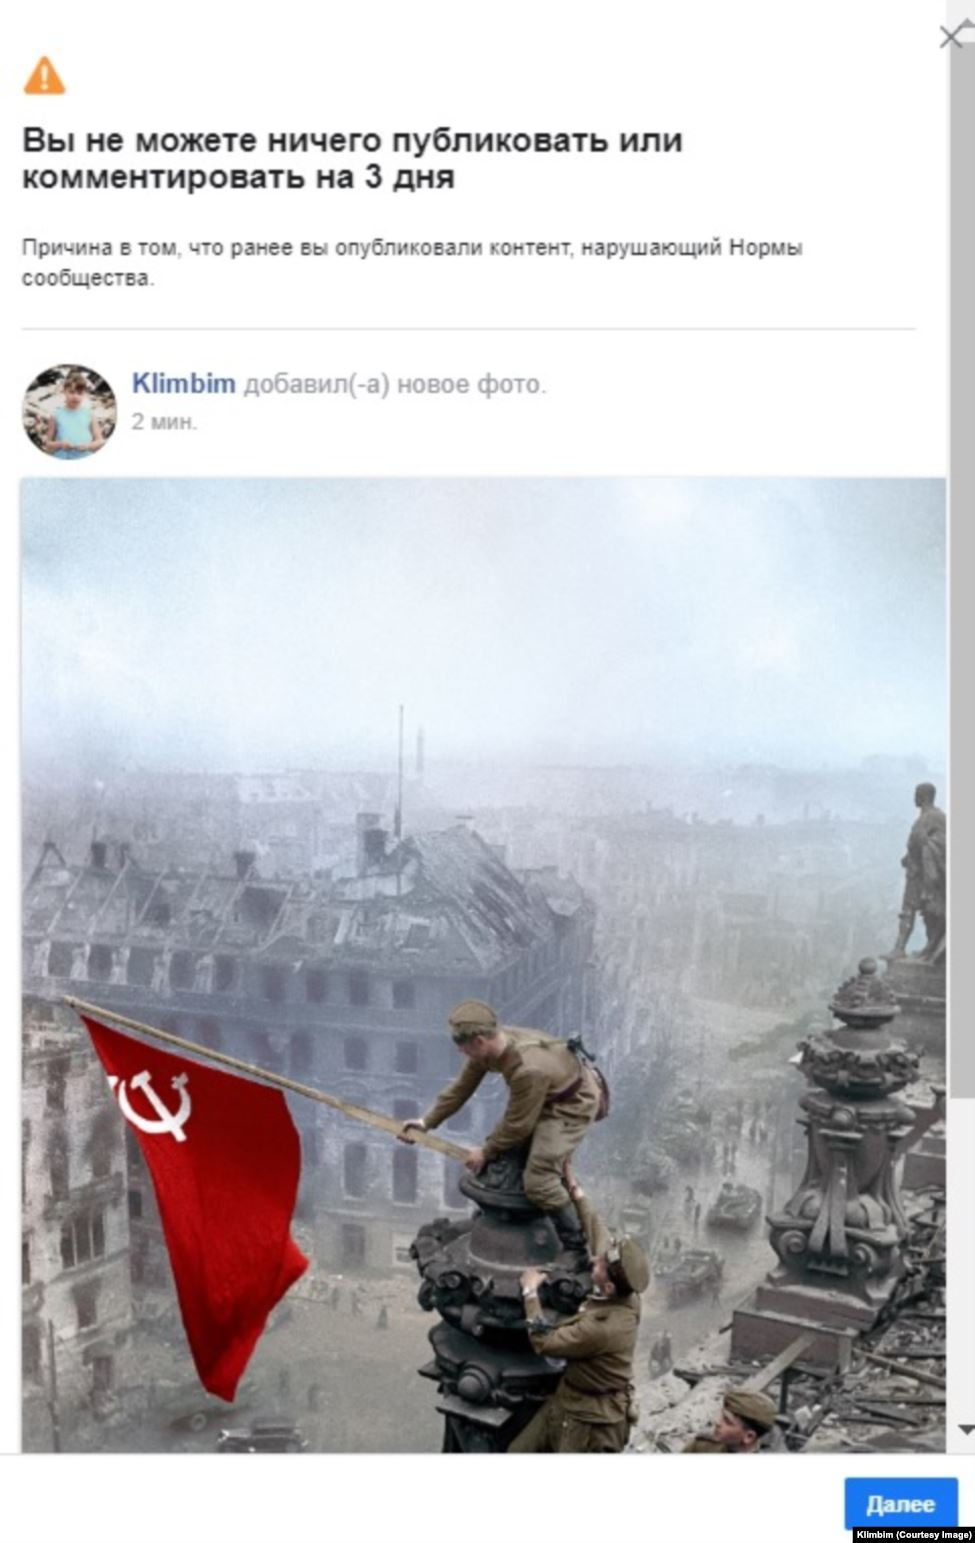 The notification Shirnina received that her account had been suspended for posting the Reichstag image.